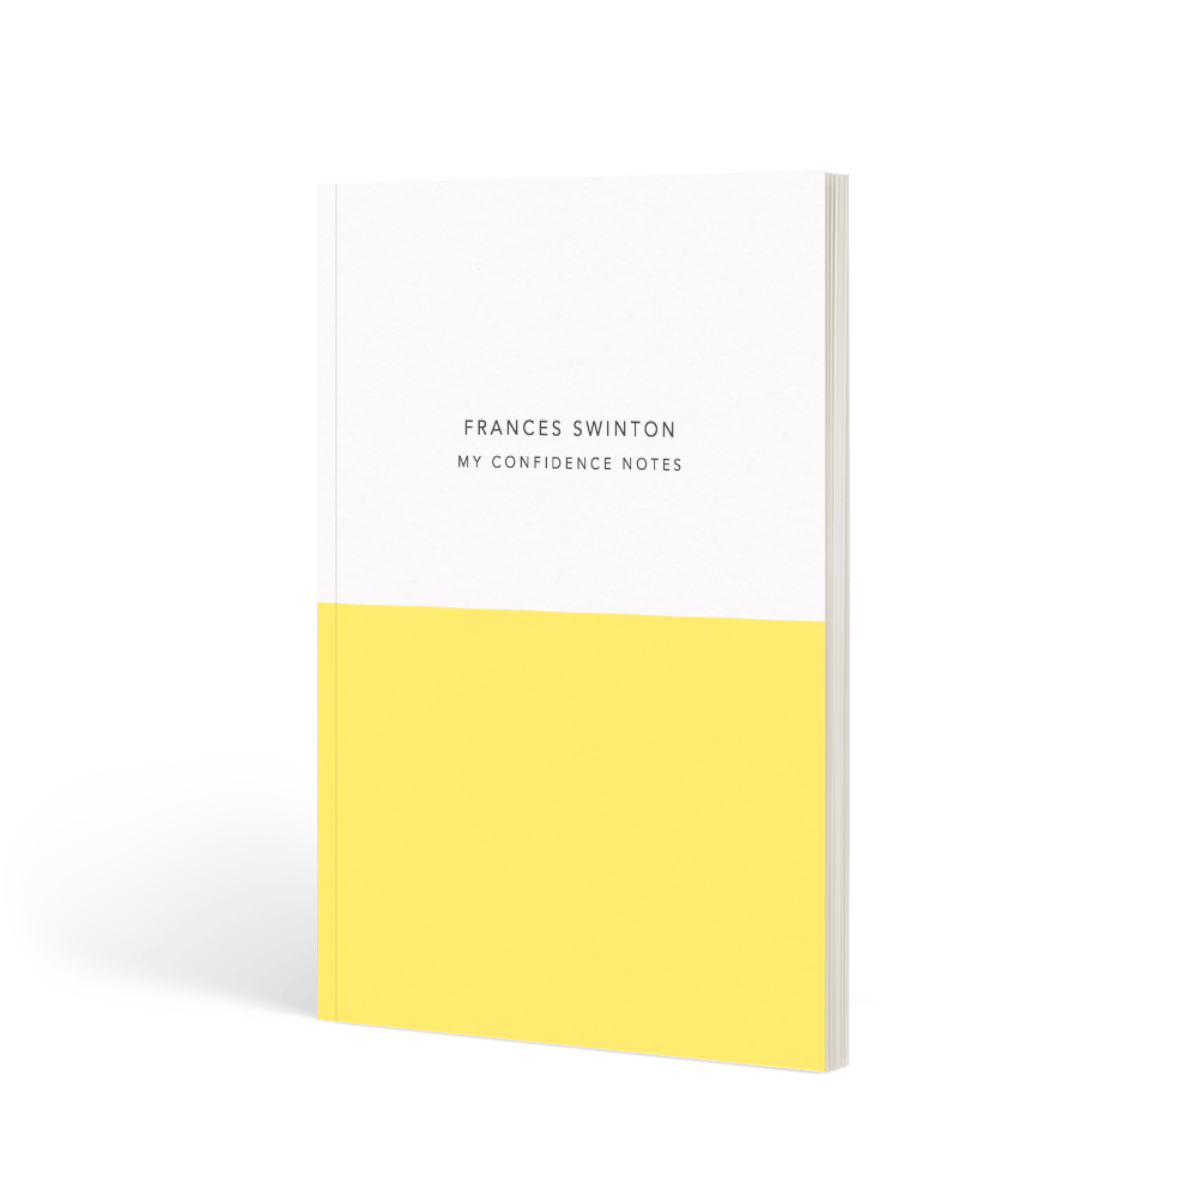 Https%3a%2f%2fwww.papier.com%2fproduct image%2f19888%2f6%2fdemi yellow confidence notes 5091 front 1487860022.png?ixlib=rb 1.1